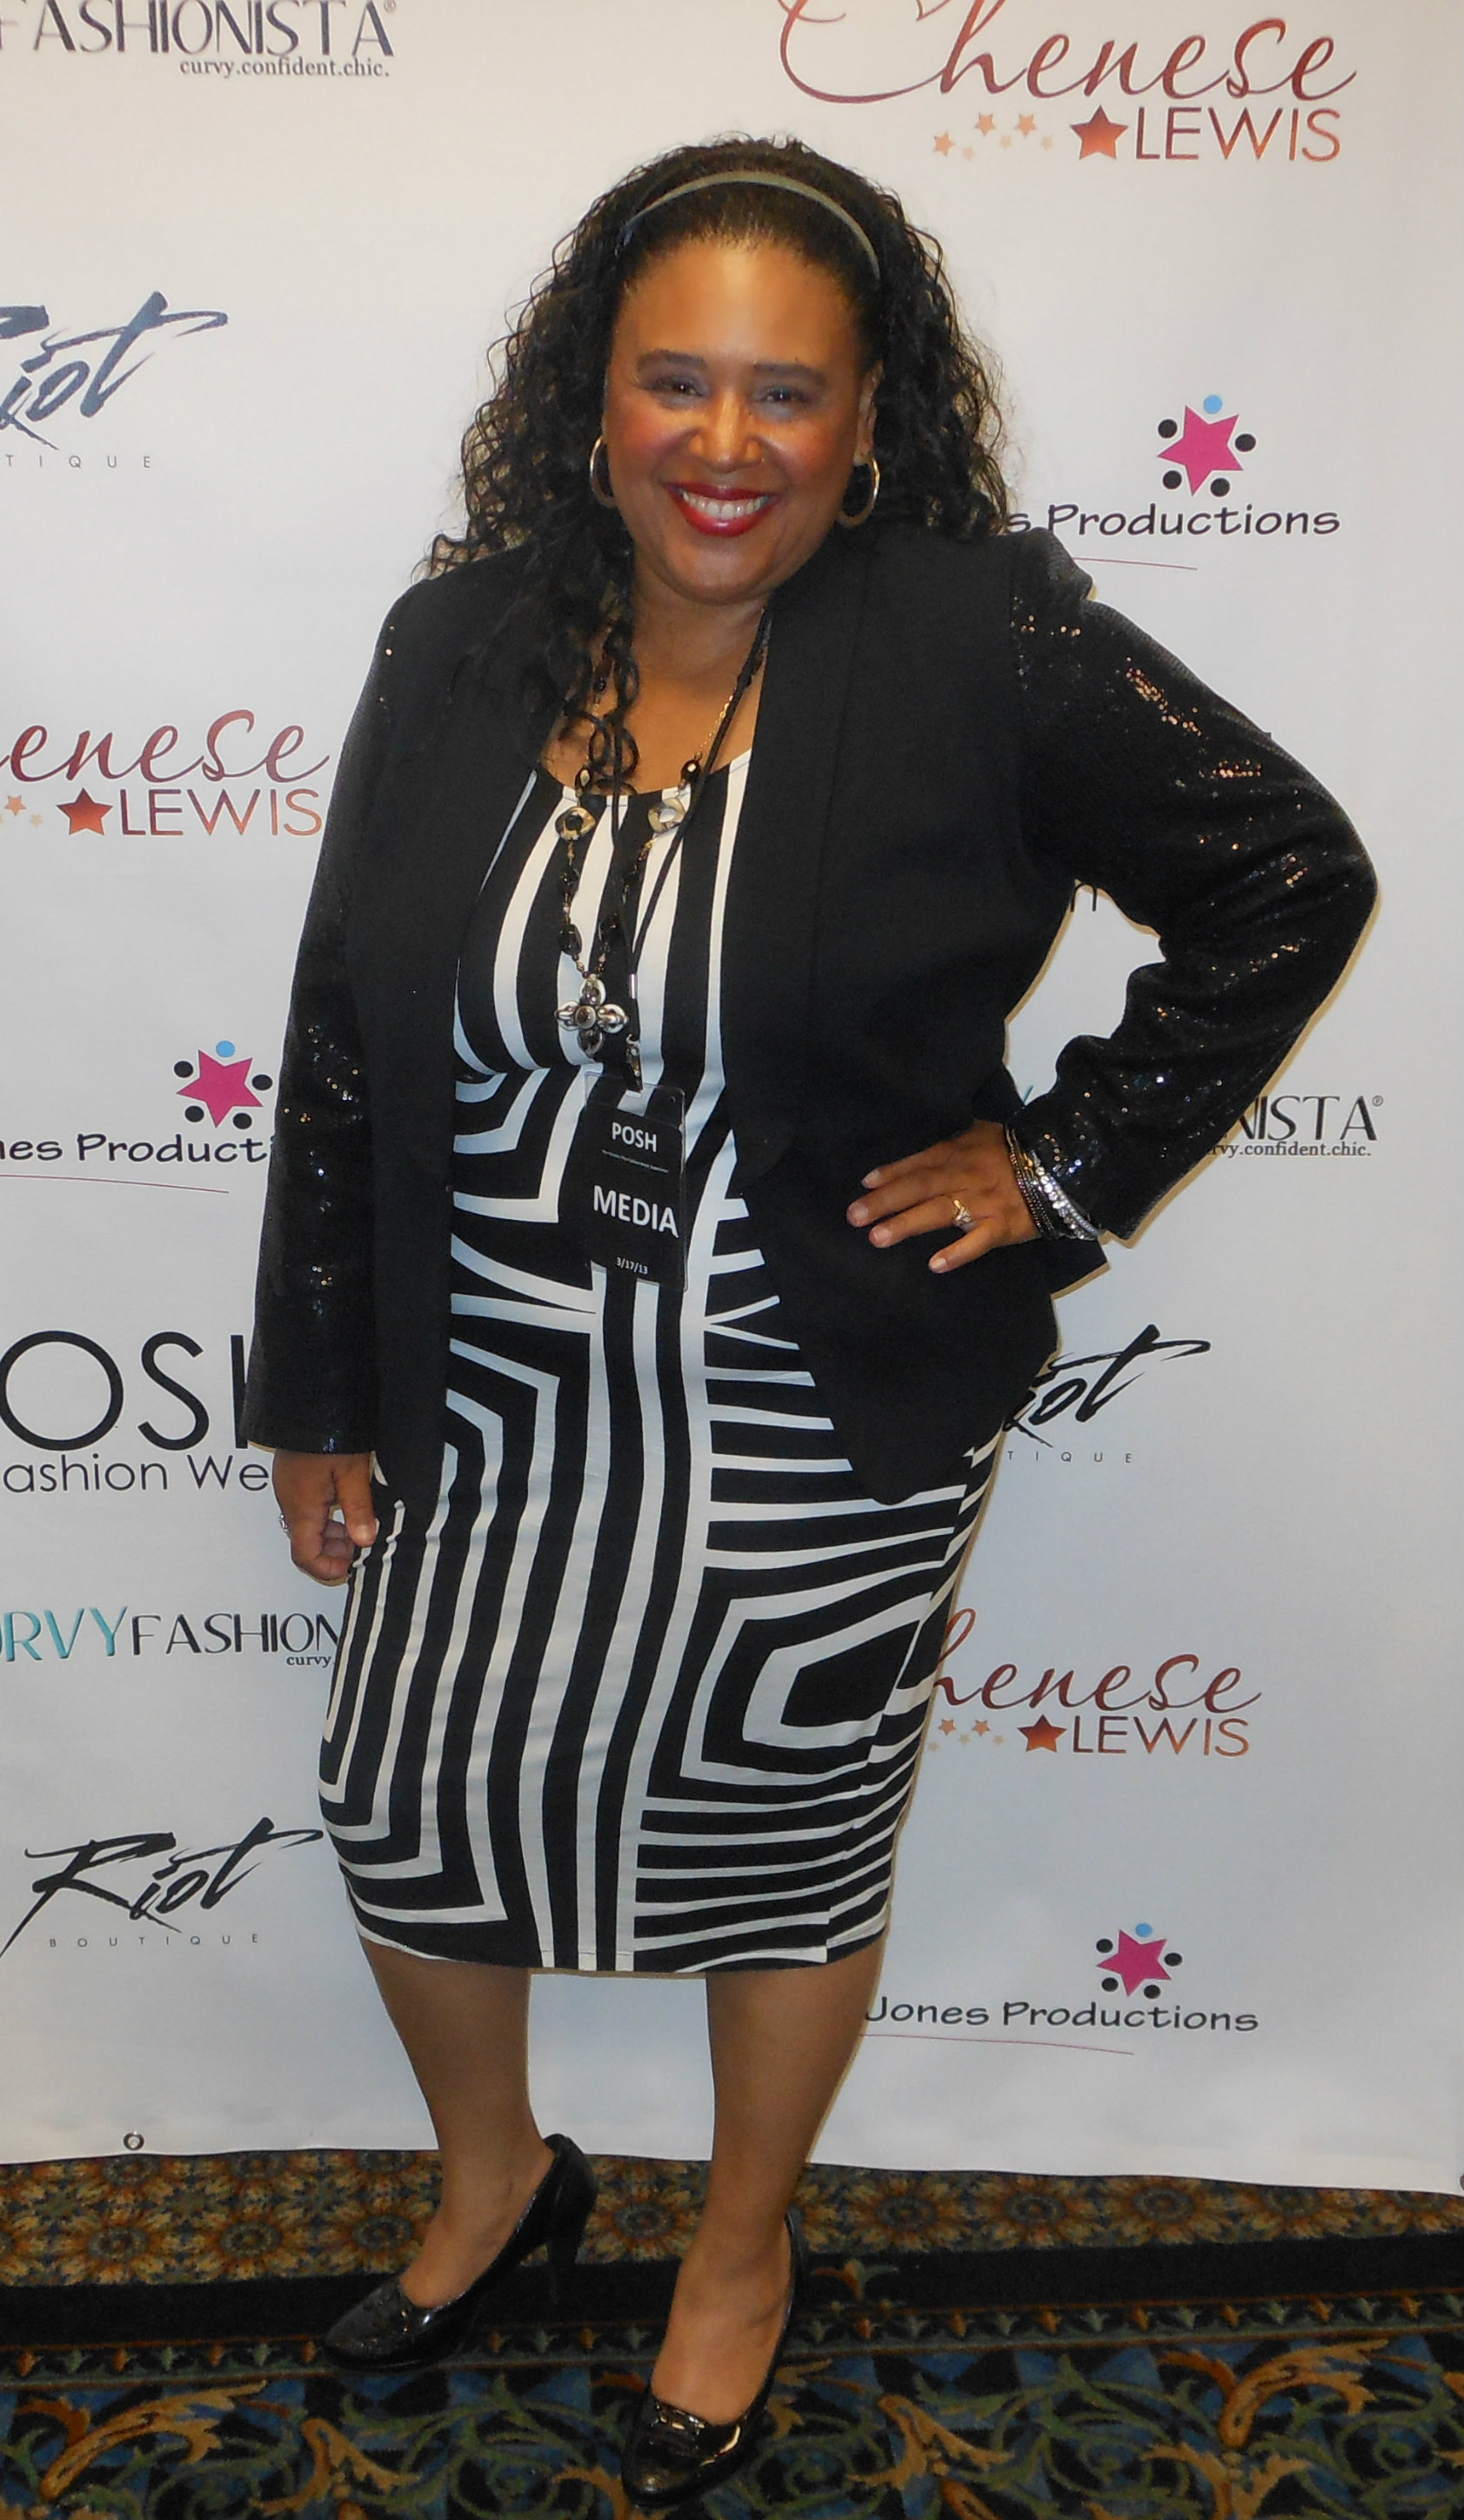 RedCarpet at POSH